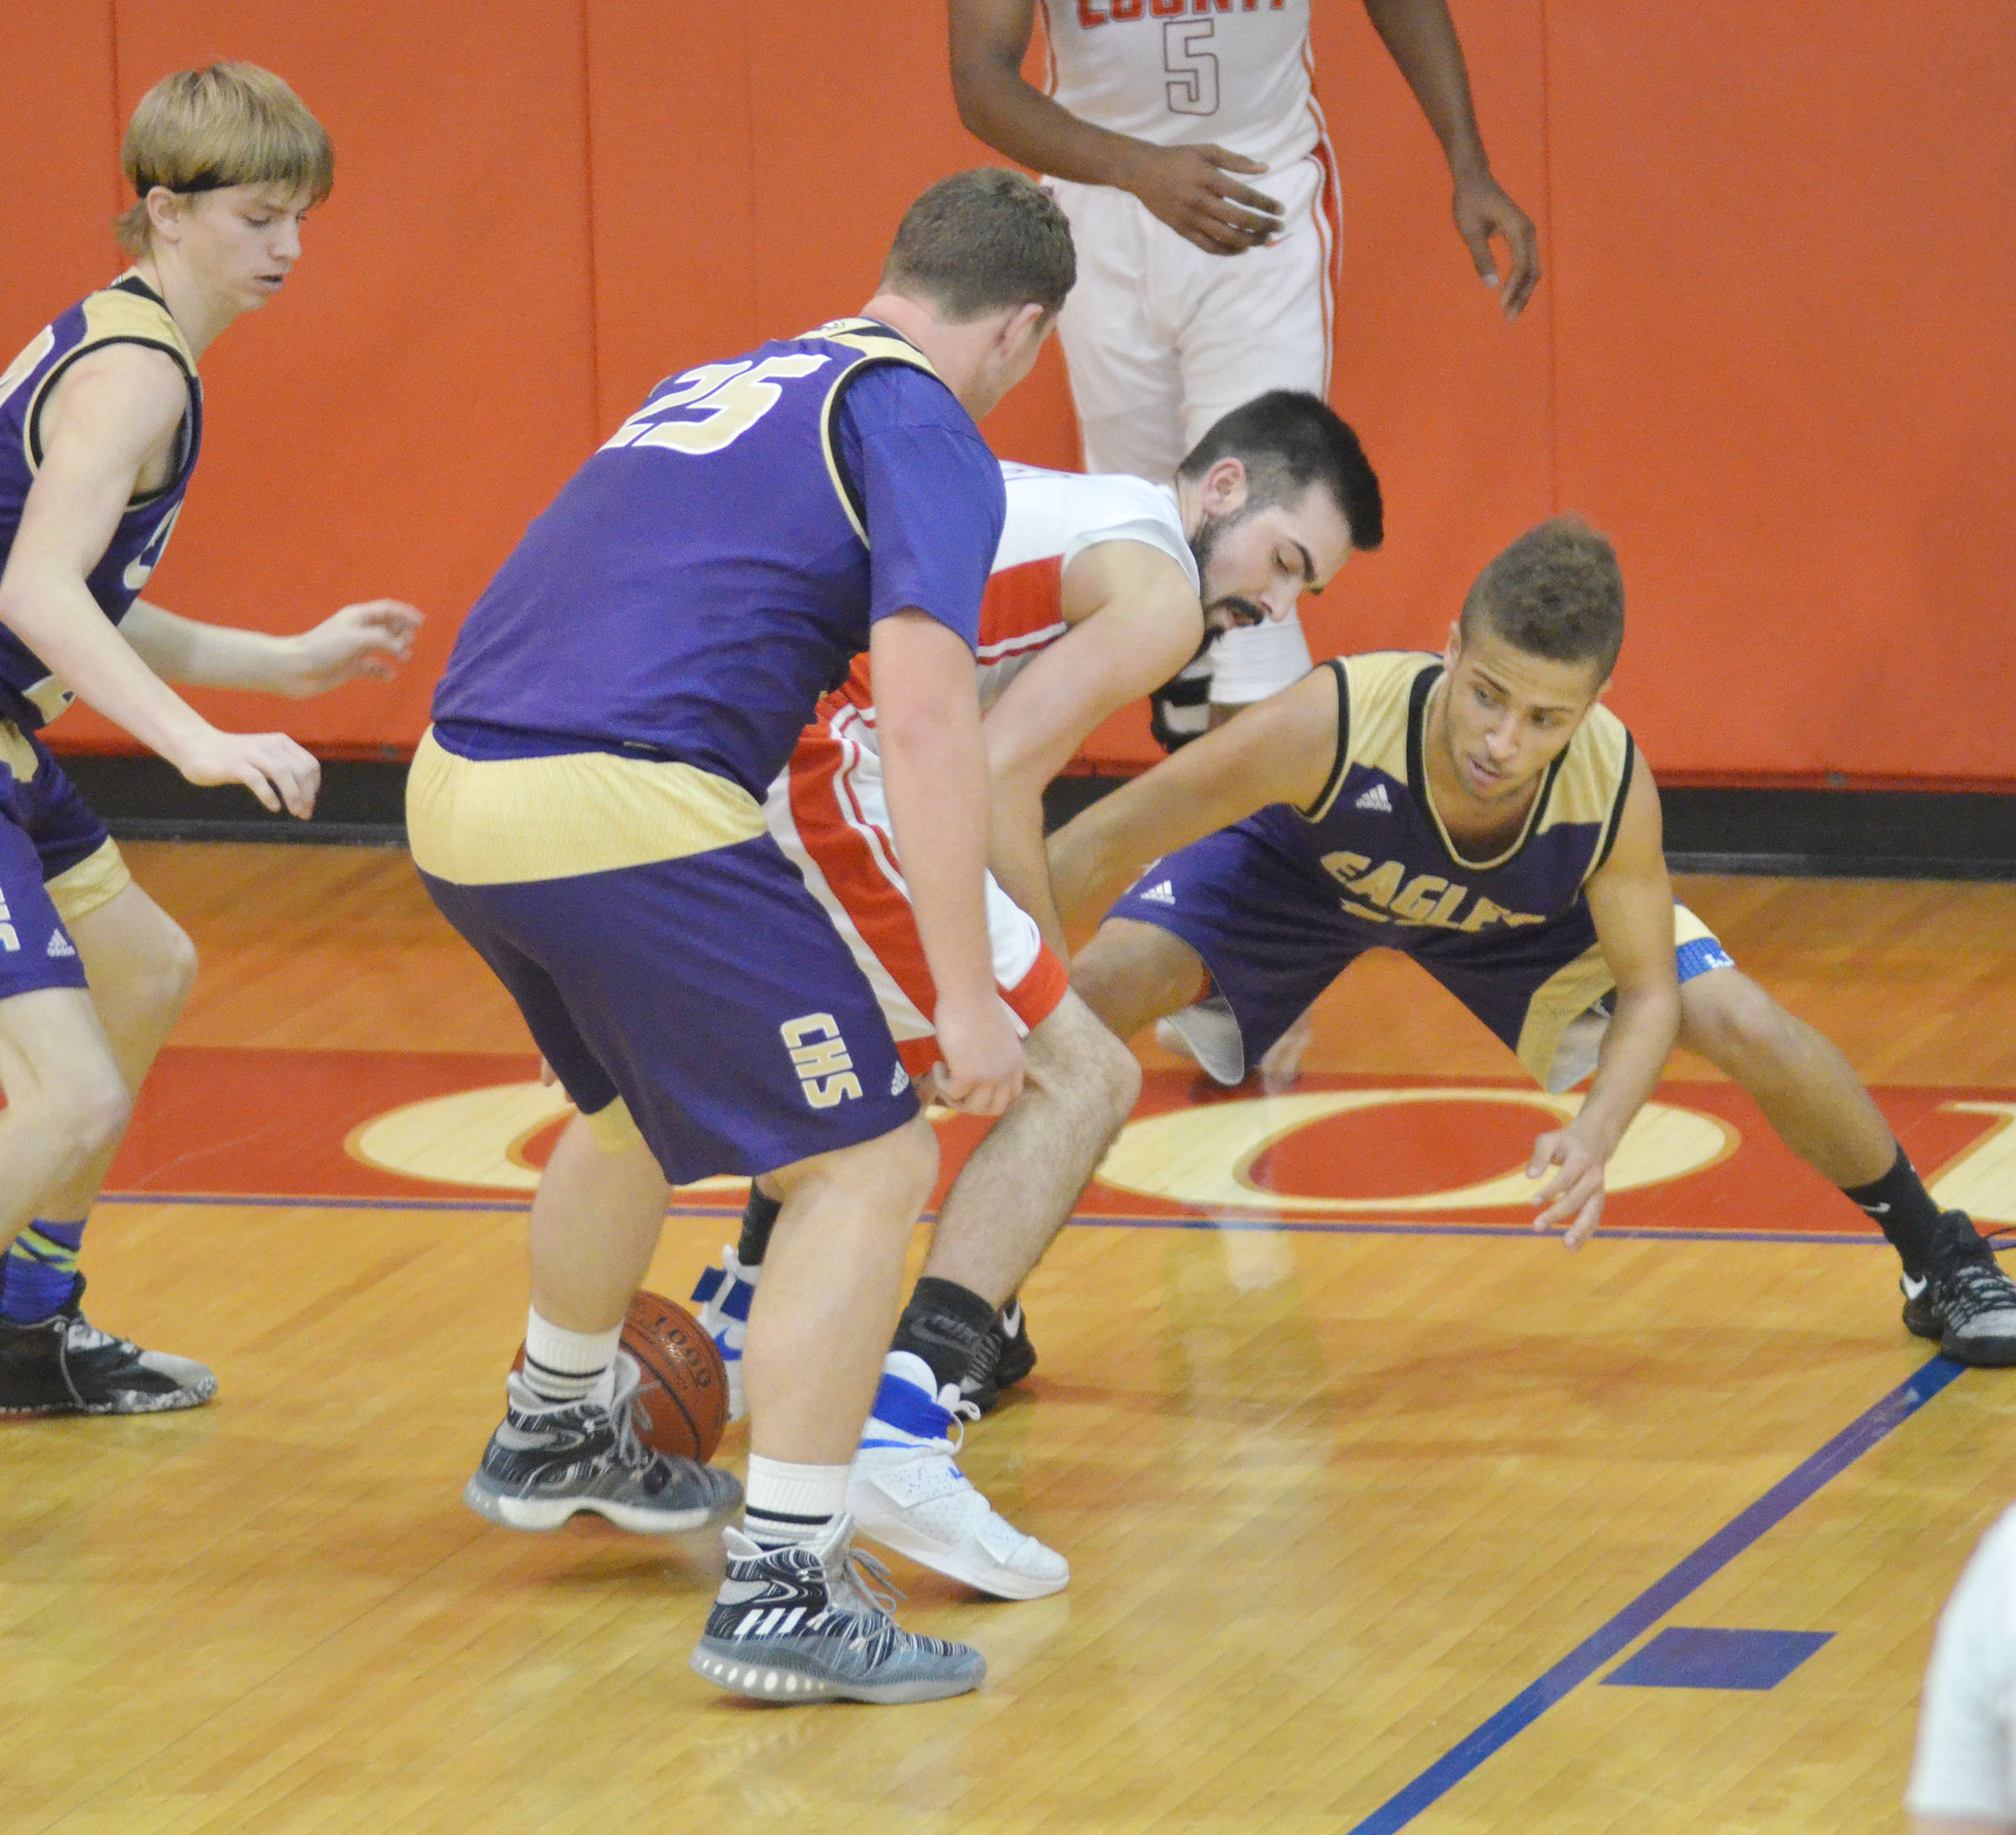 CHS sophomore Lane Bottoms, at left, and junior Ethan Lay fight for the ball.